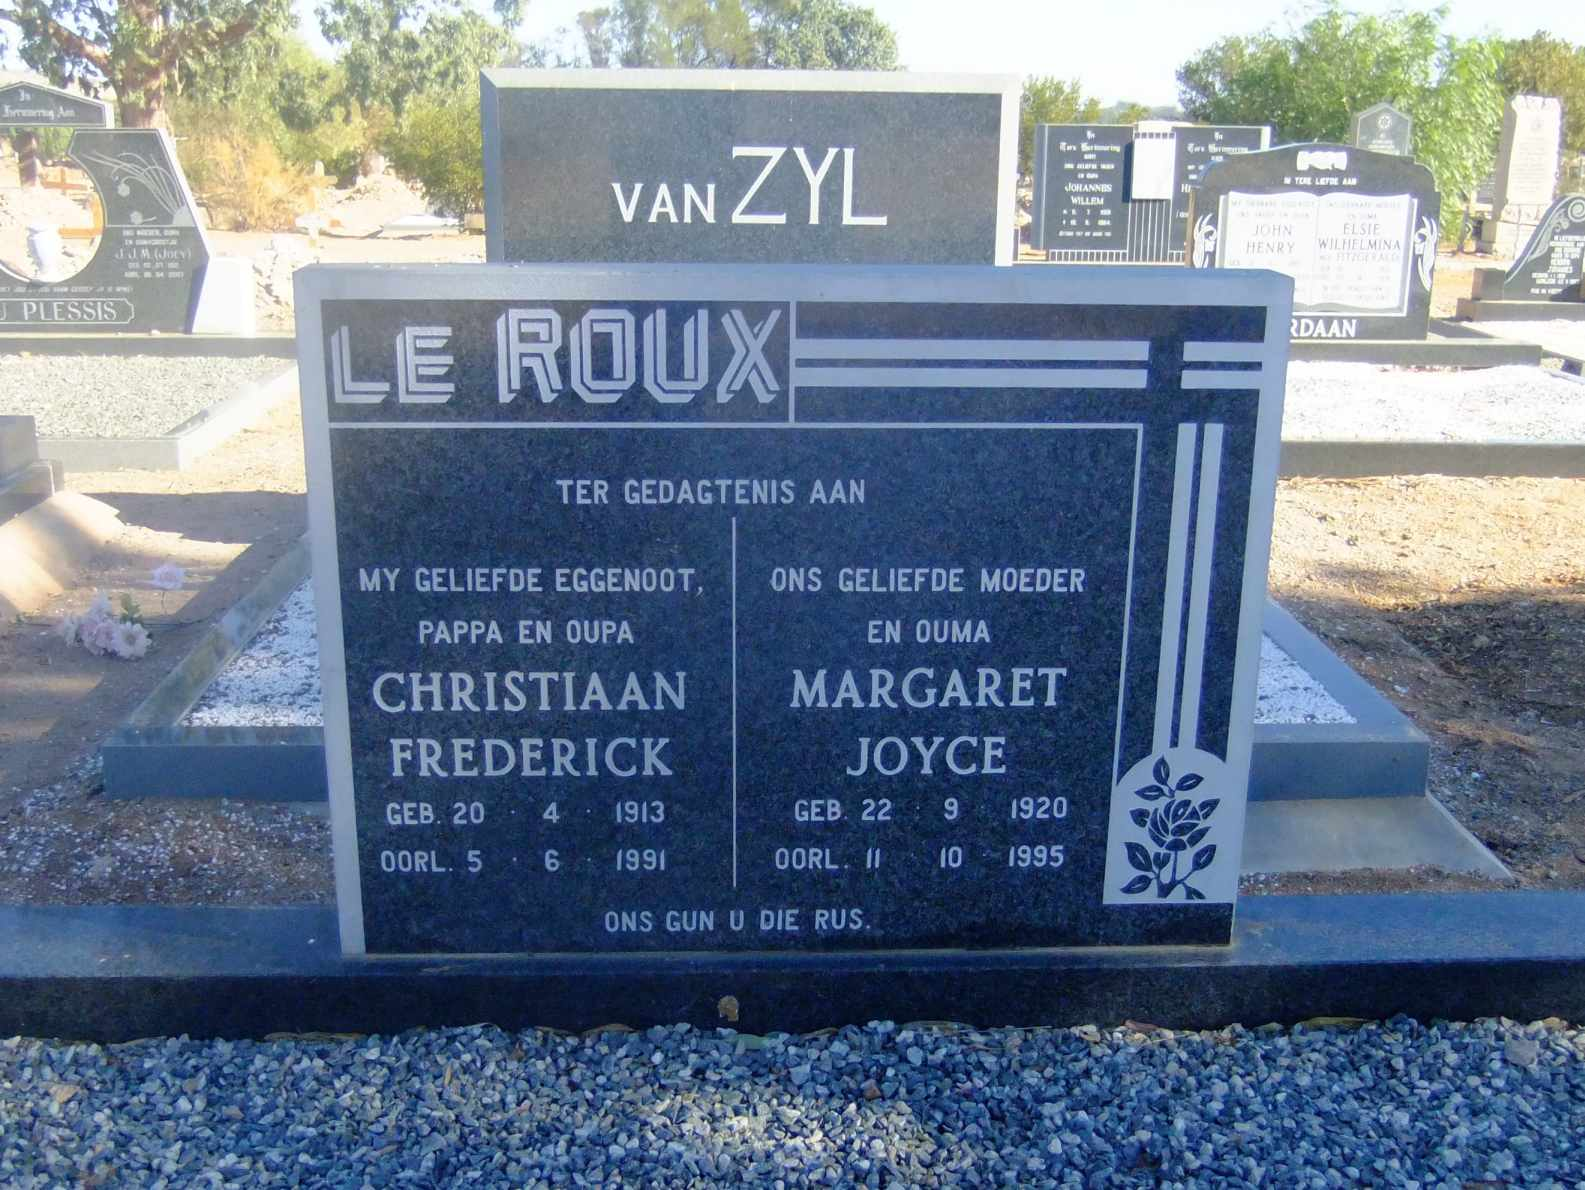 Le Roux, Christiaan Frederick born 20 April 1913 died 05 June 1991 and Margaret Joyce born 22 September 1920 died 11 October 1995